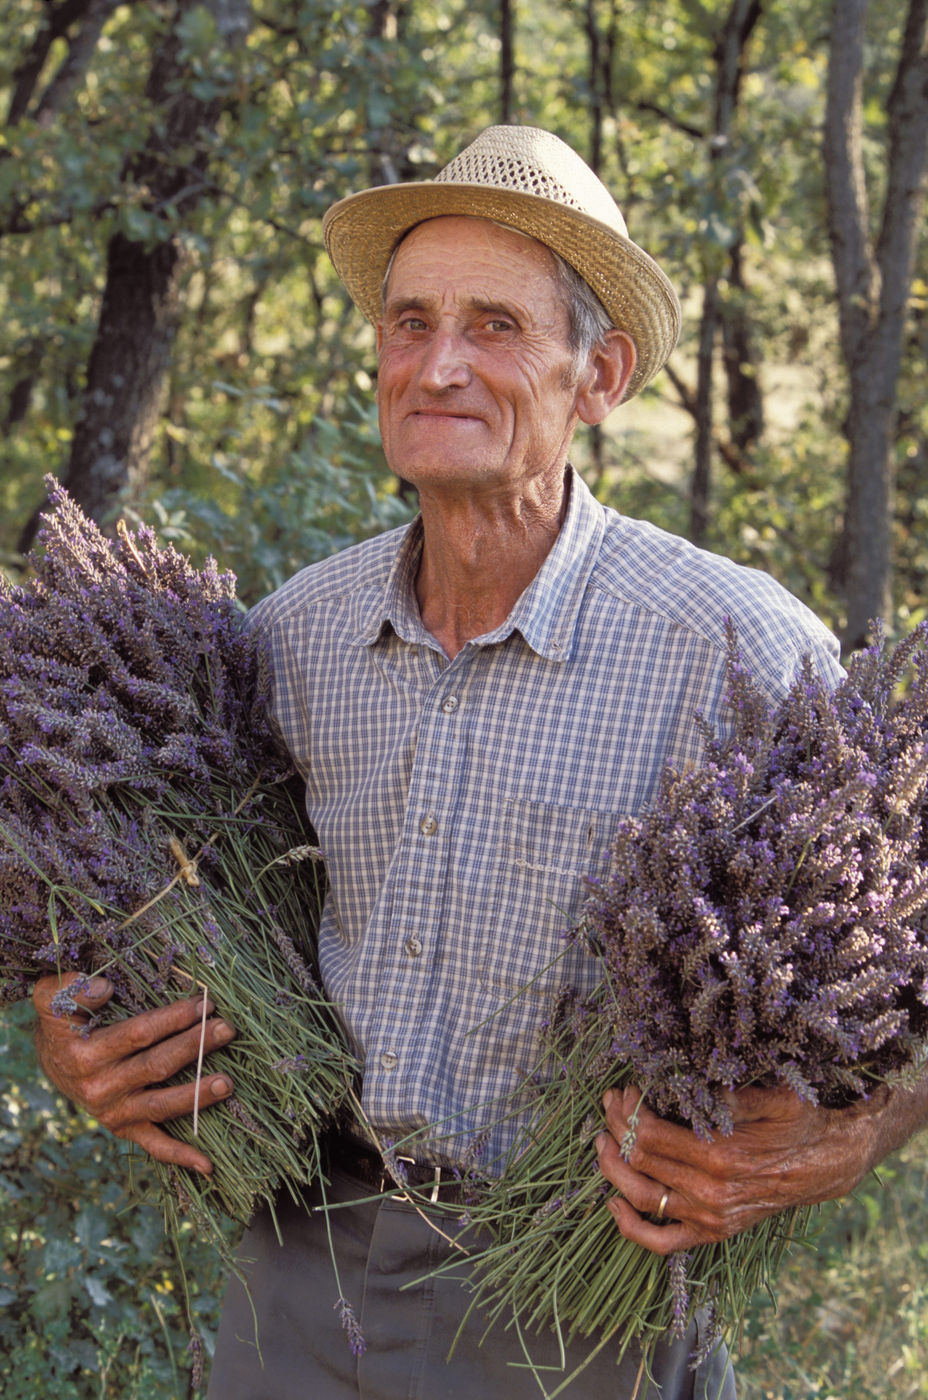 Harvested Lavender Flower Bunches